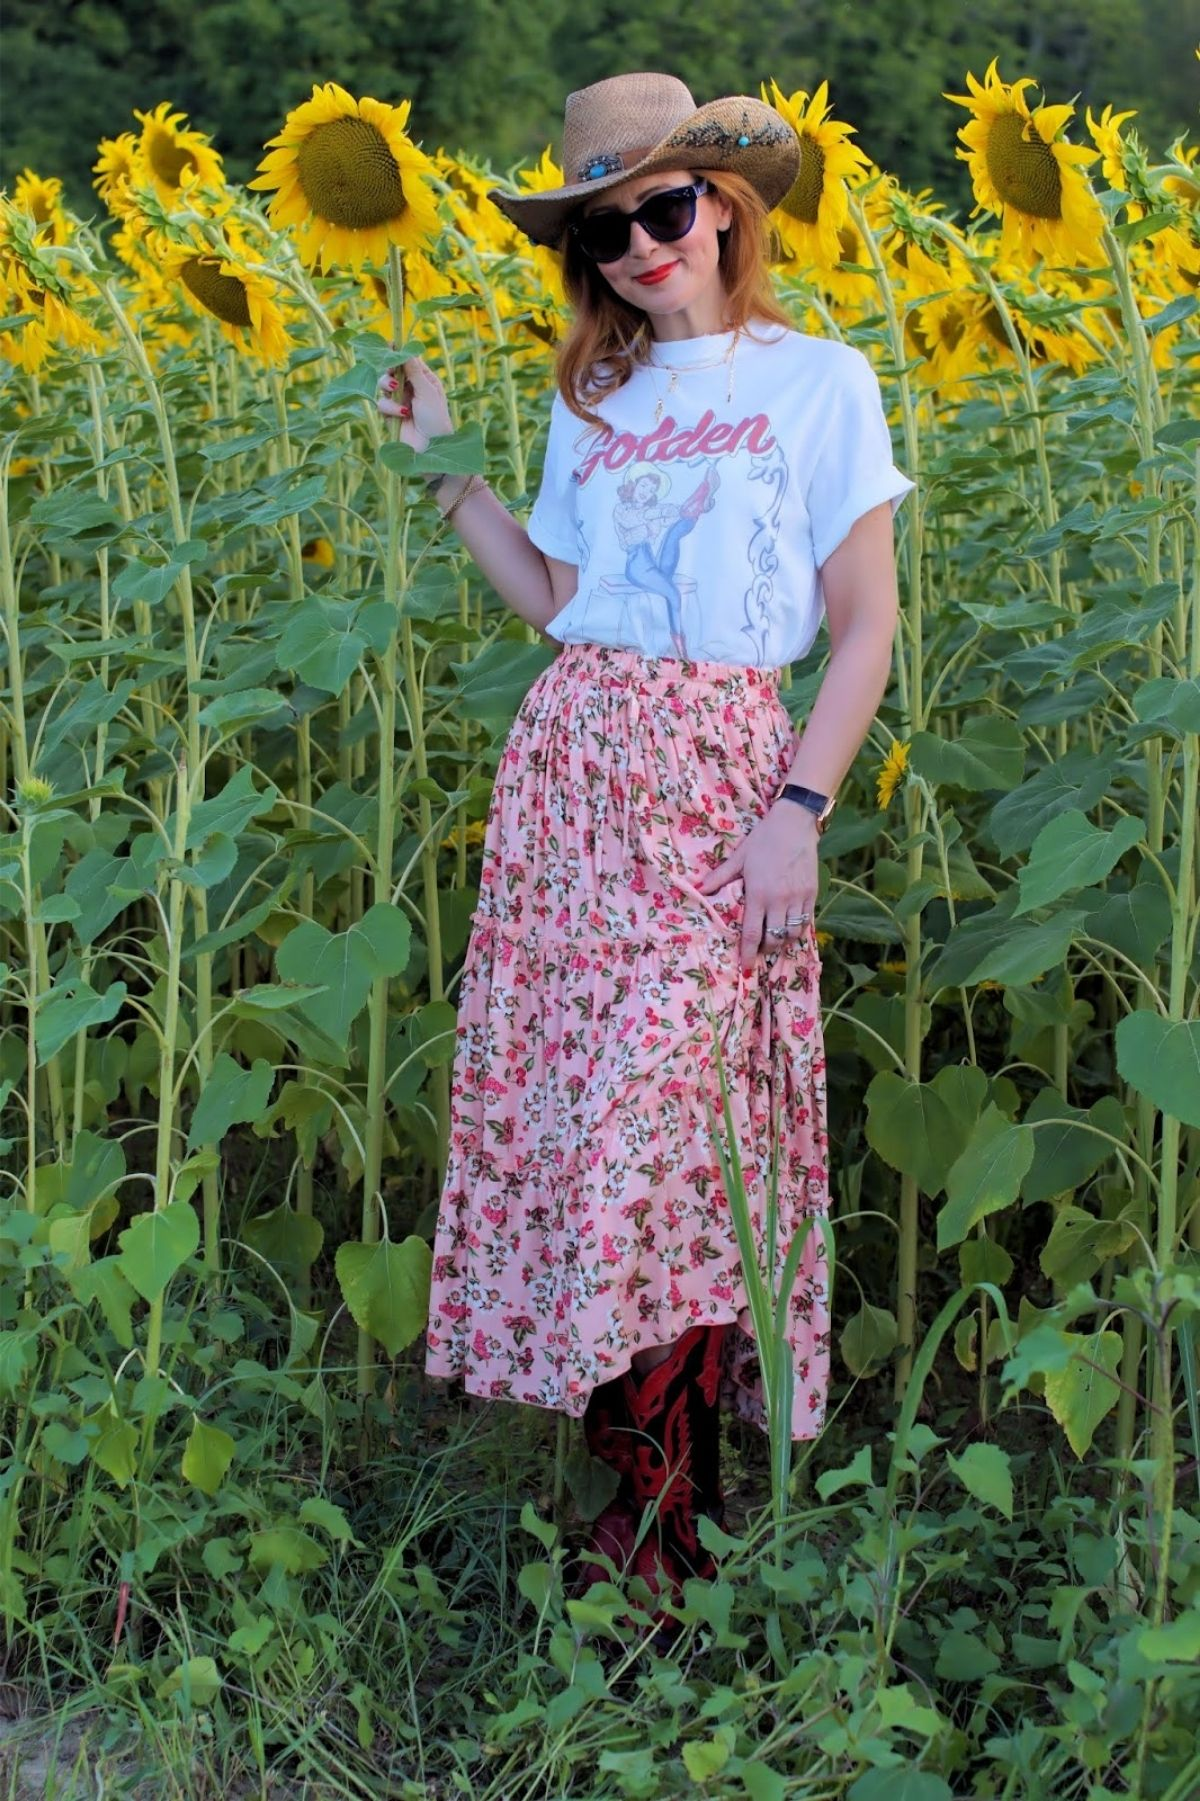 styling pint maxi skirt with short sleeve graphic tee that says golden goose on it